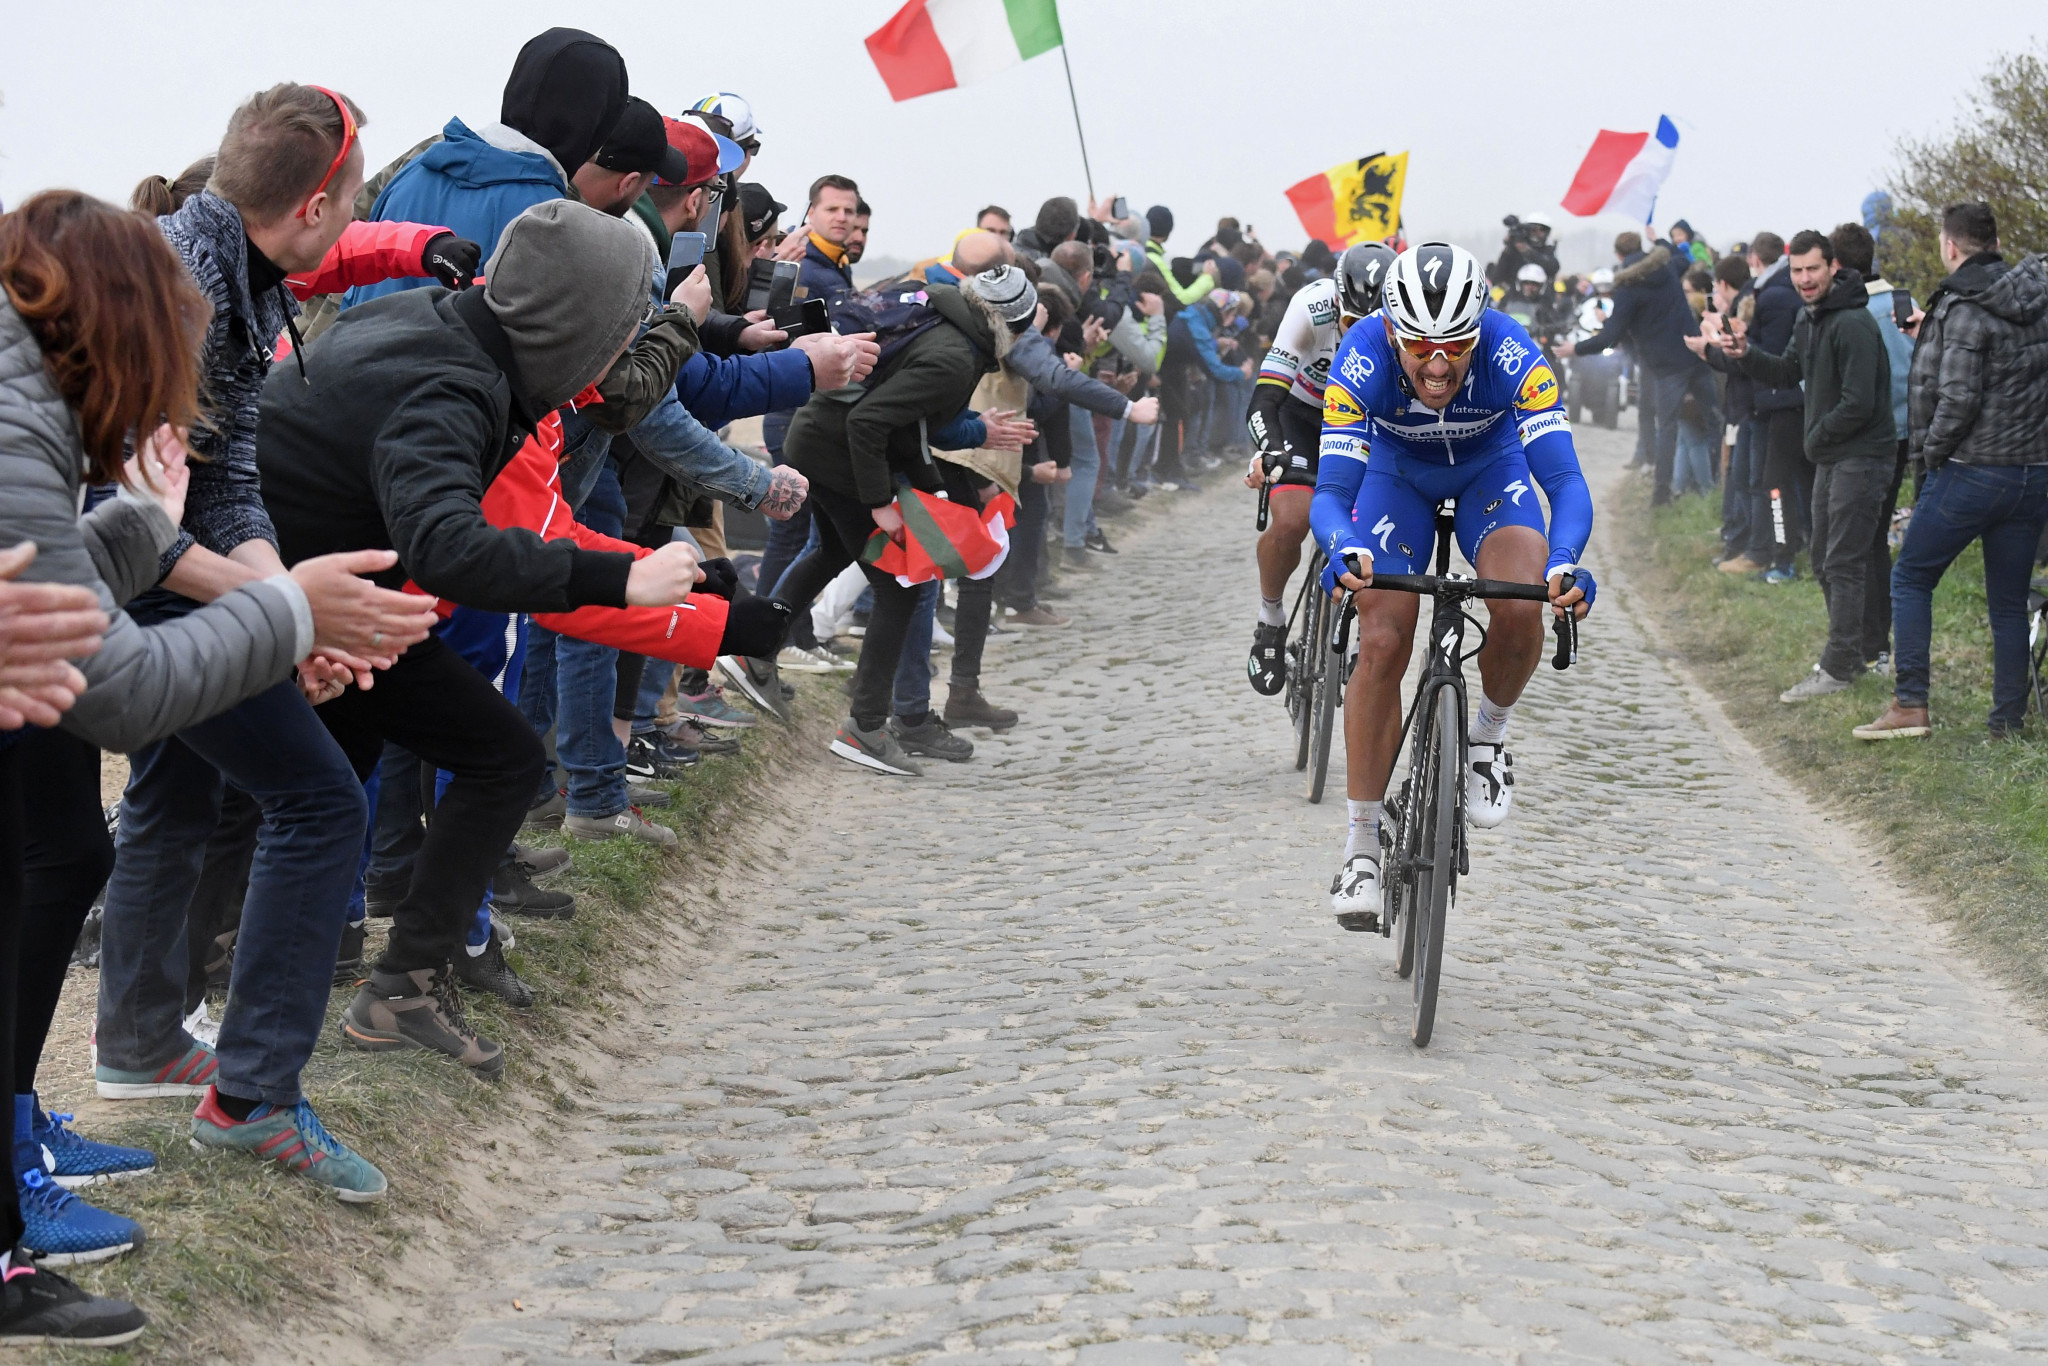 Paris-Roubaix has been moved to October ©Getty Images